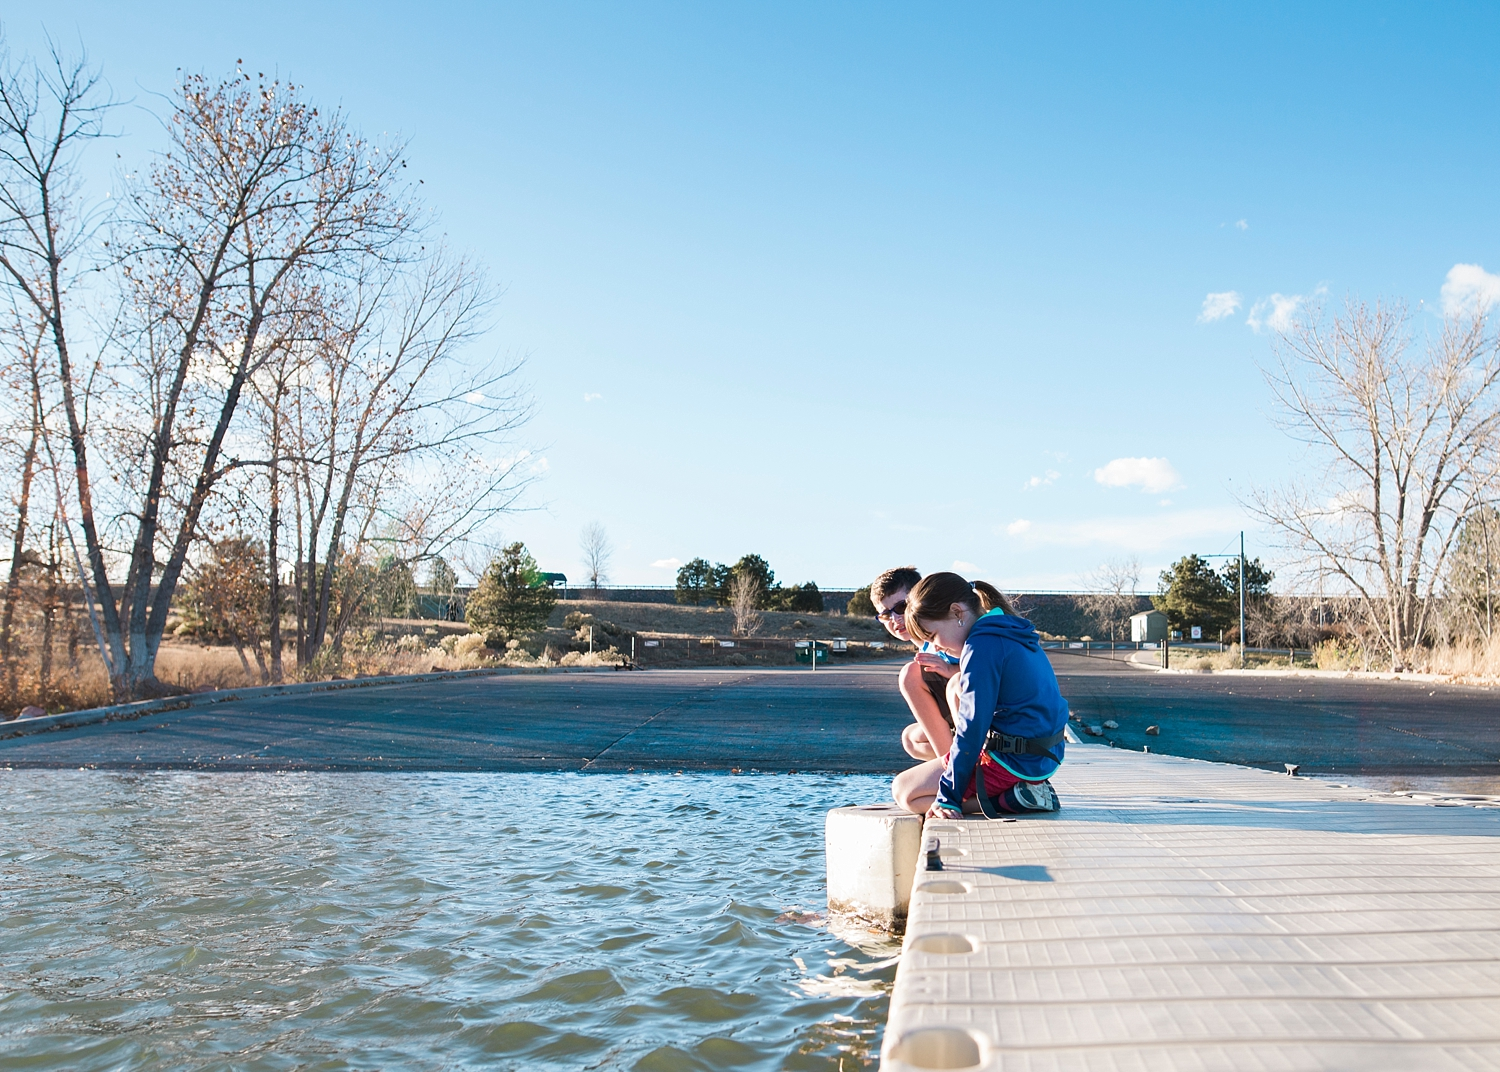 Unschooling leaves time for more exploration and just 'being'. I NEVER thought I'd be a homeschooler! | Getting Unschooled is a blog that follows a family of four in Denver, Colorado as they unschool and roadschool their kids.